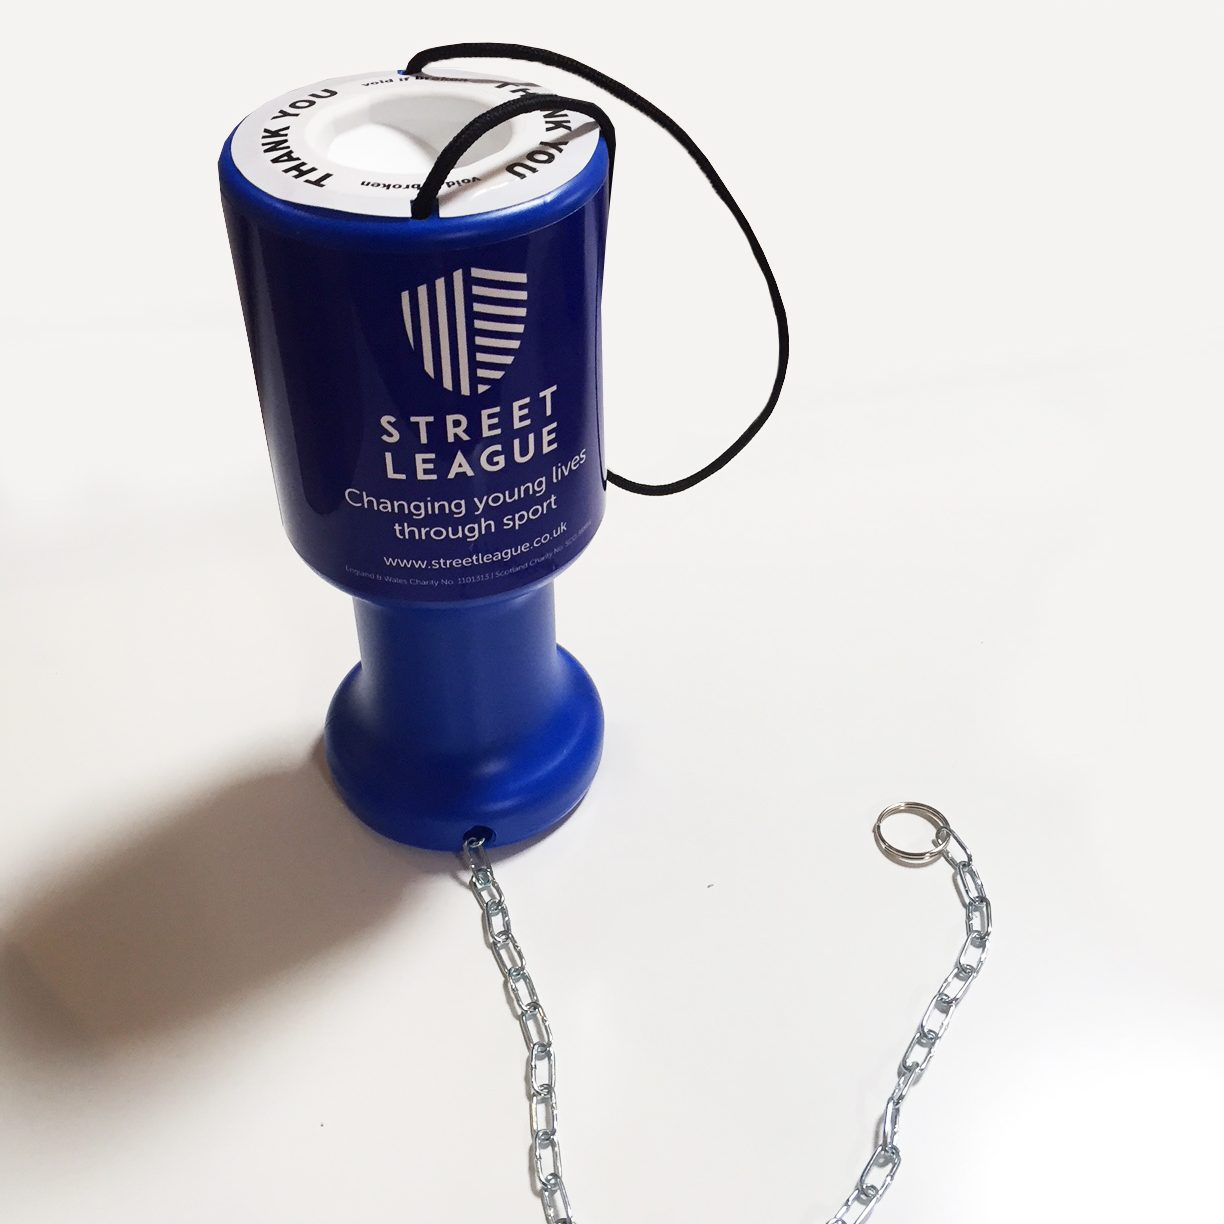 charity and fundraising banner moneybox